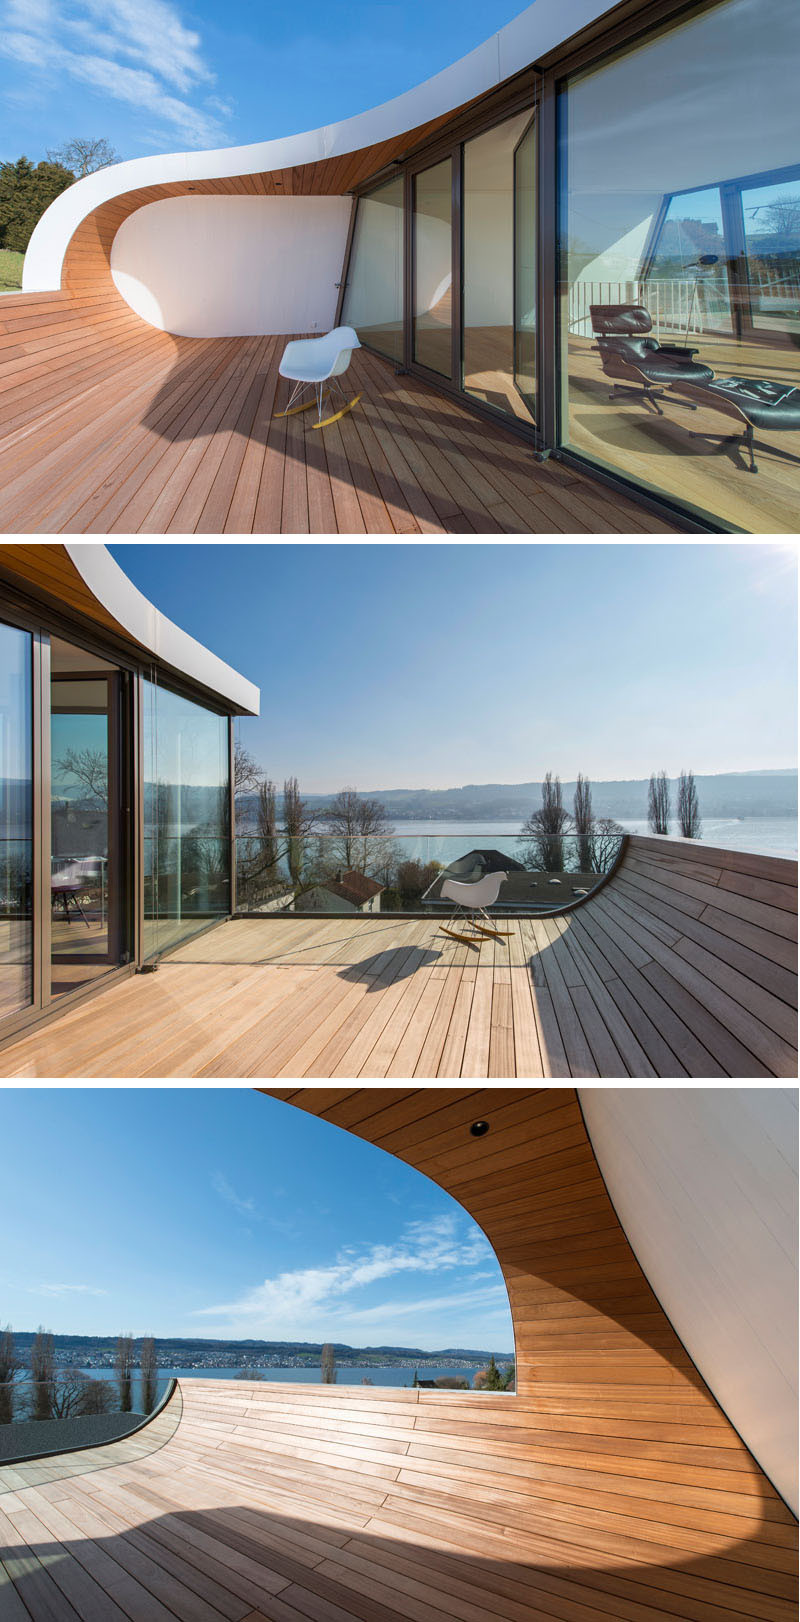 This family house on Lake Zurich, Switzerland, has a curved wooden deck to enjoy the views.